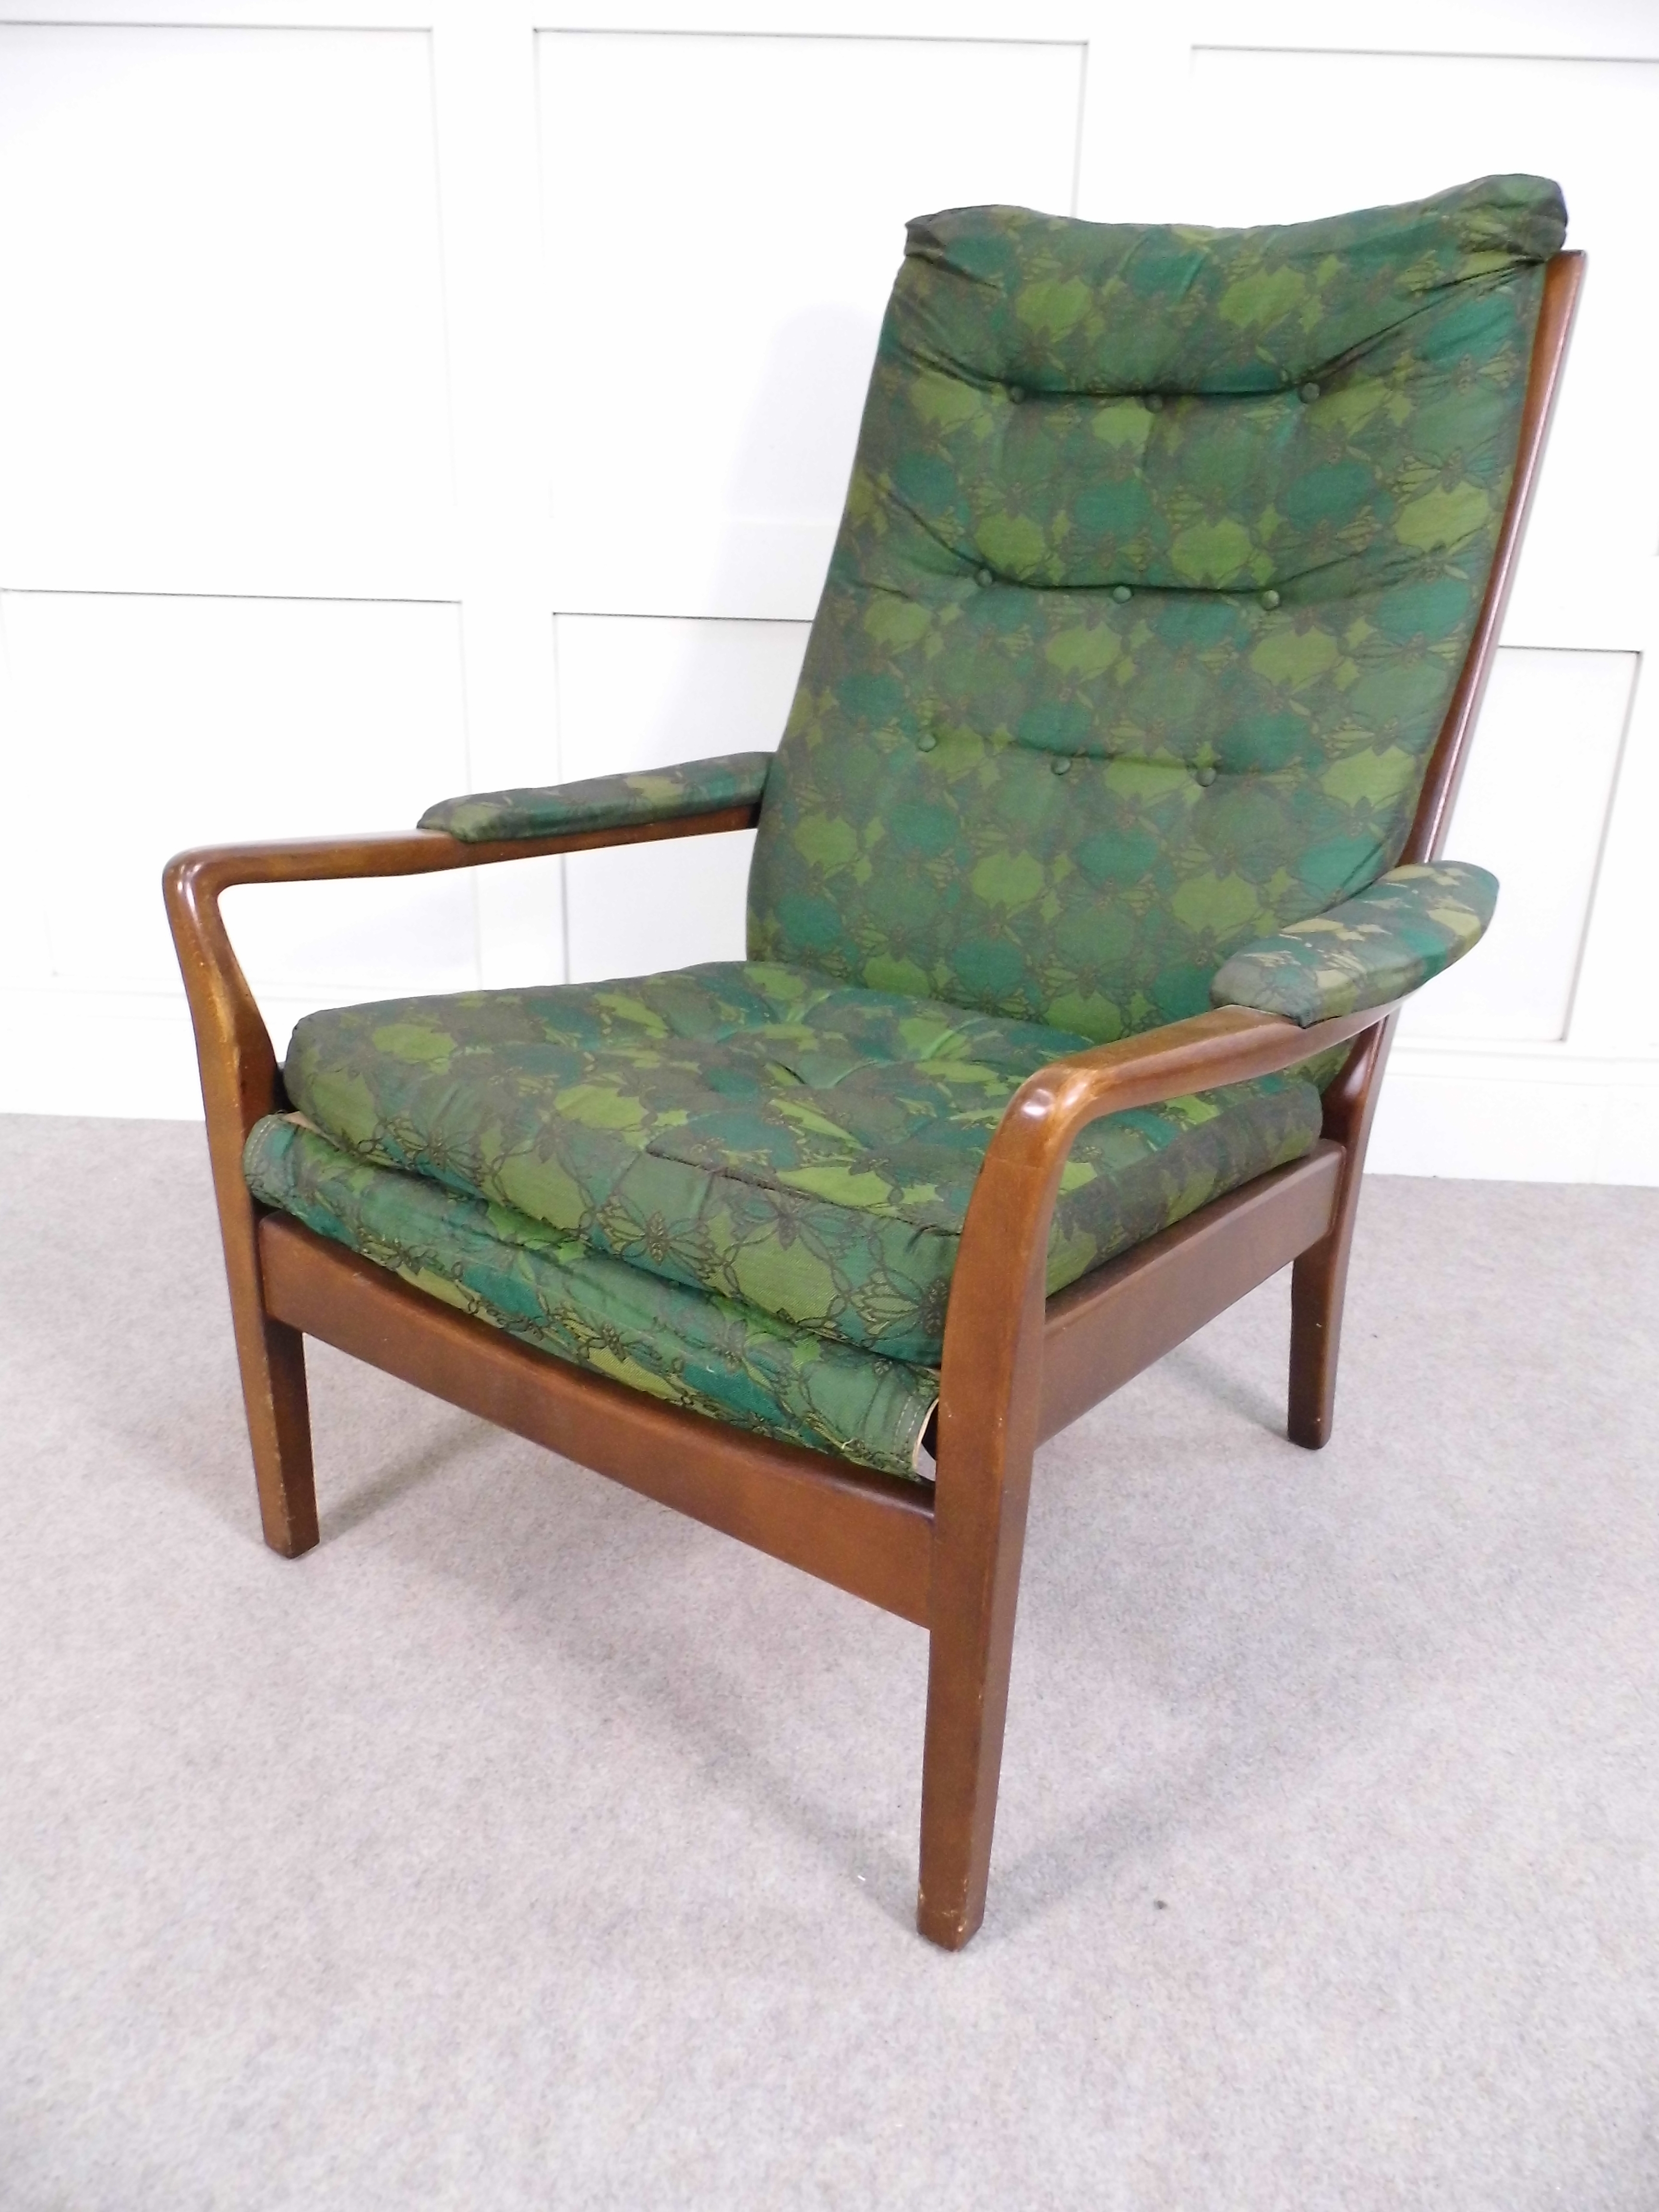 Excellent Elite Cintique Mid Century Armchairs Regarding Vintage Retro 1959 Cintique C5 Deluxe Group Chair Mid Century (View 9 of 15)